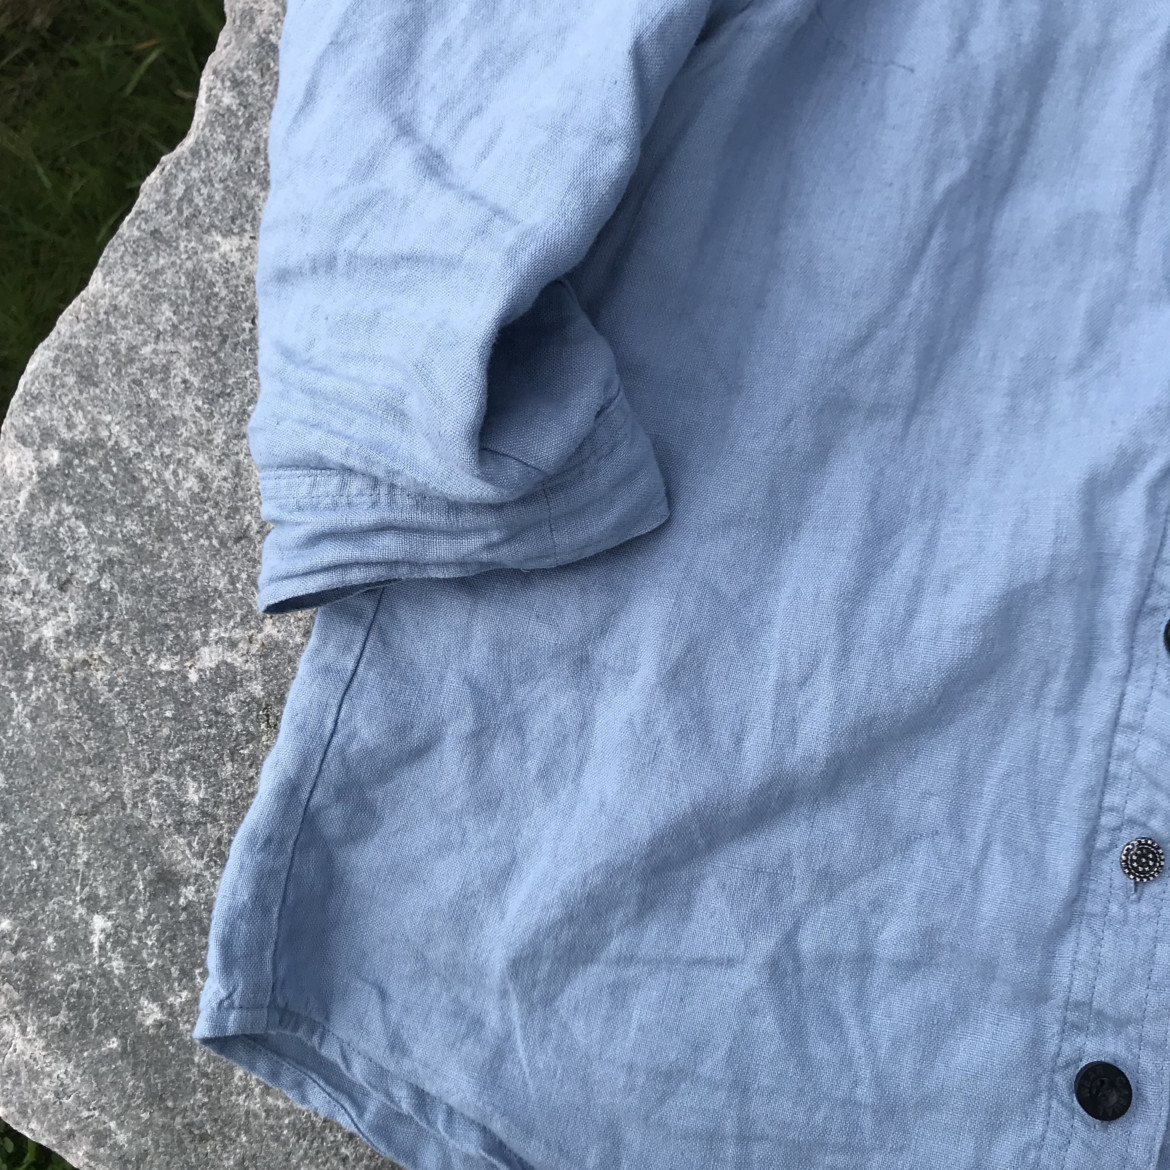 blue shirt on a rock